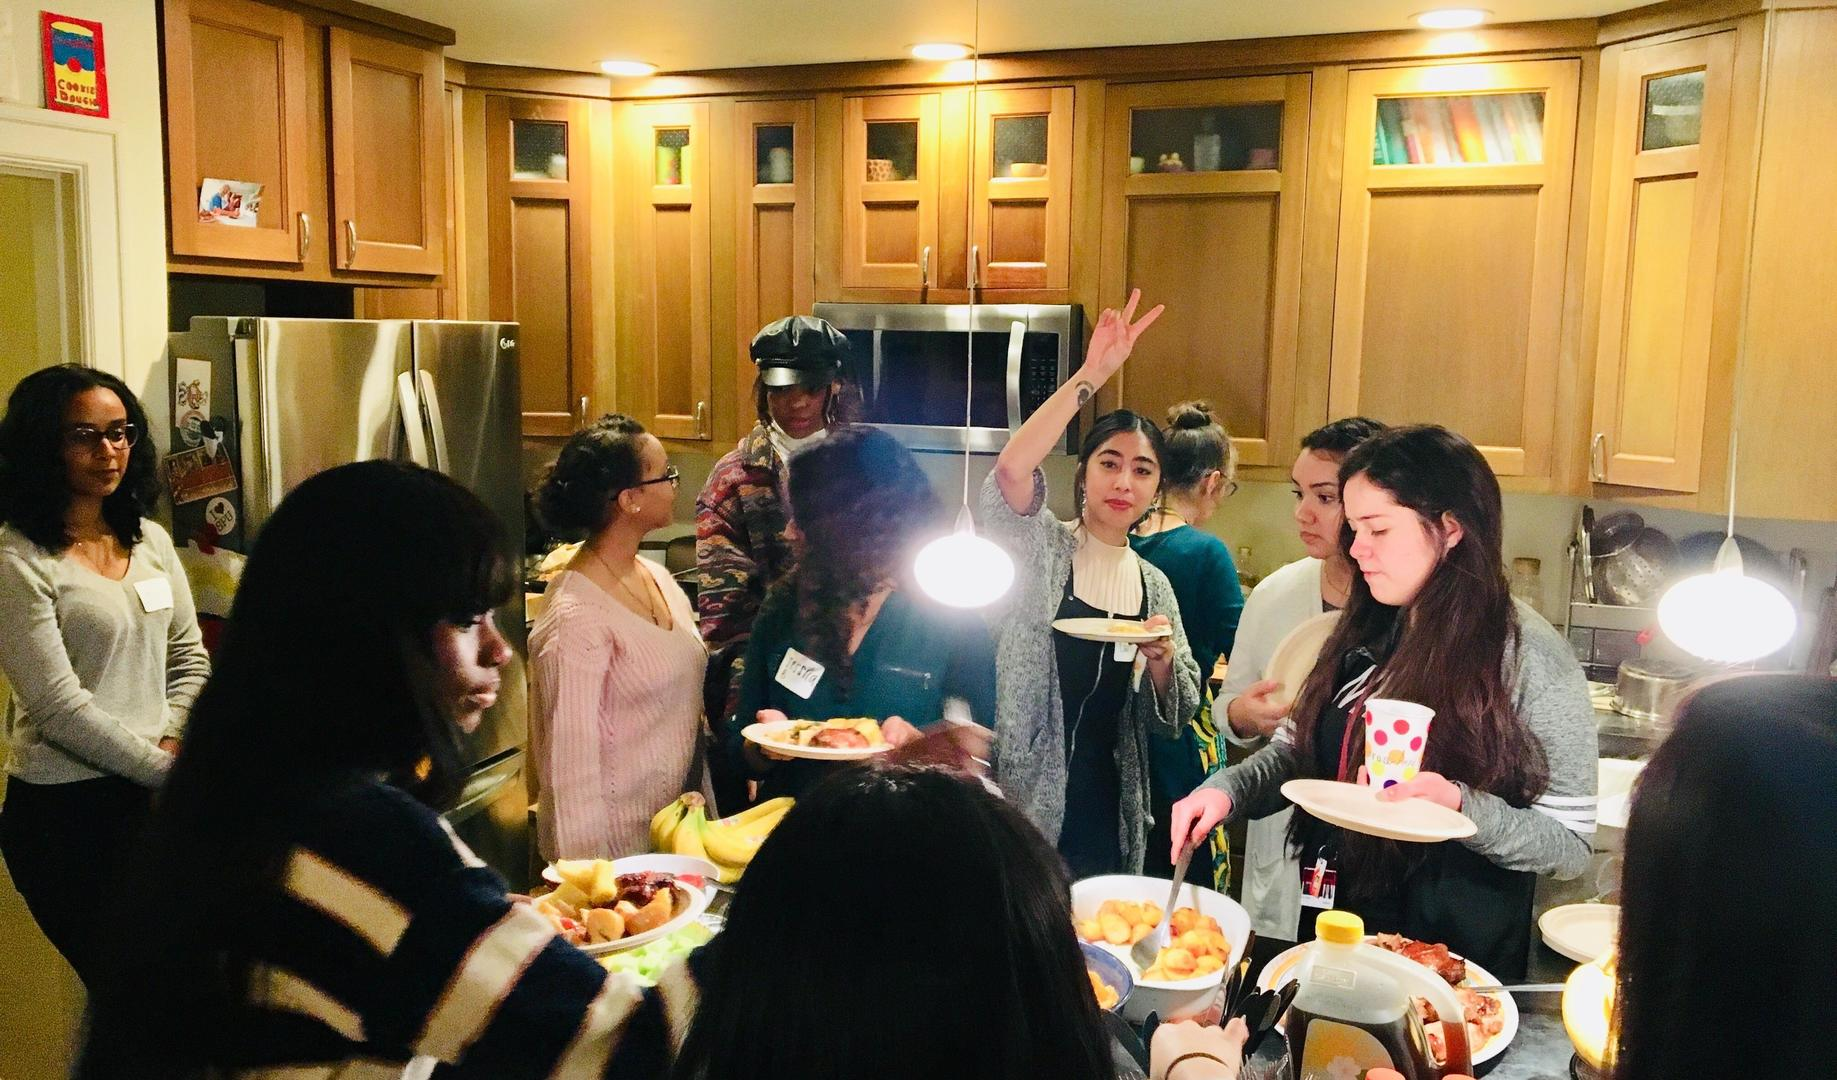 Students and professors crowd in a kitchen to get food from a buffet laid out on the counter.